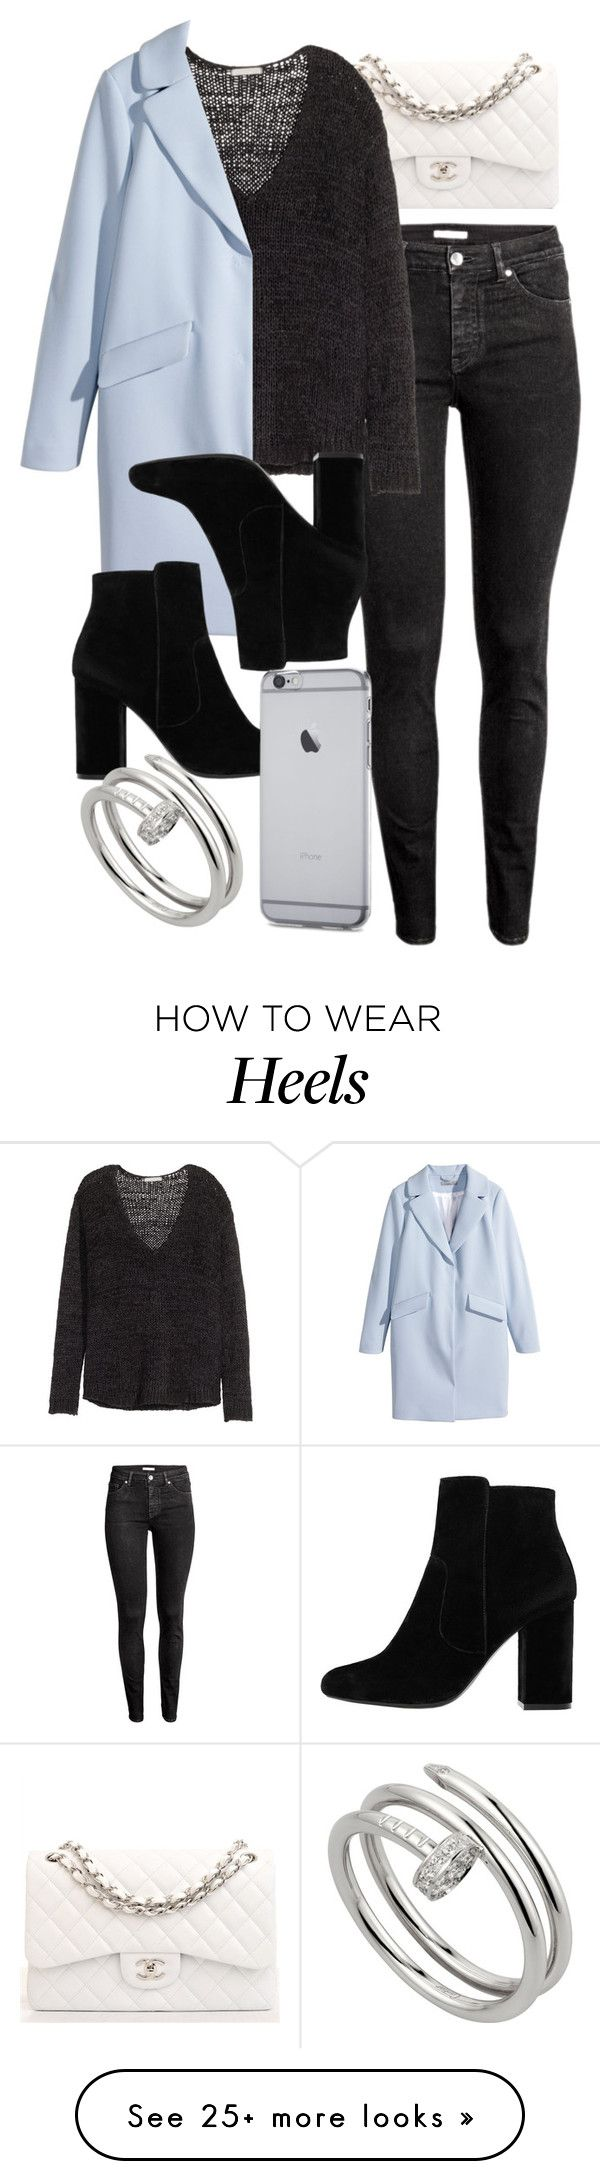 """""""Style #11682"""" by vany-alvarado on Polyvore featuring H&M, Chanel, MANGO and Cartier"""